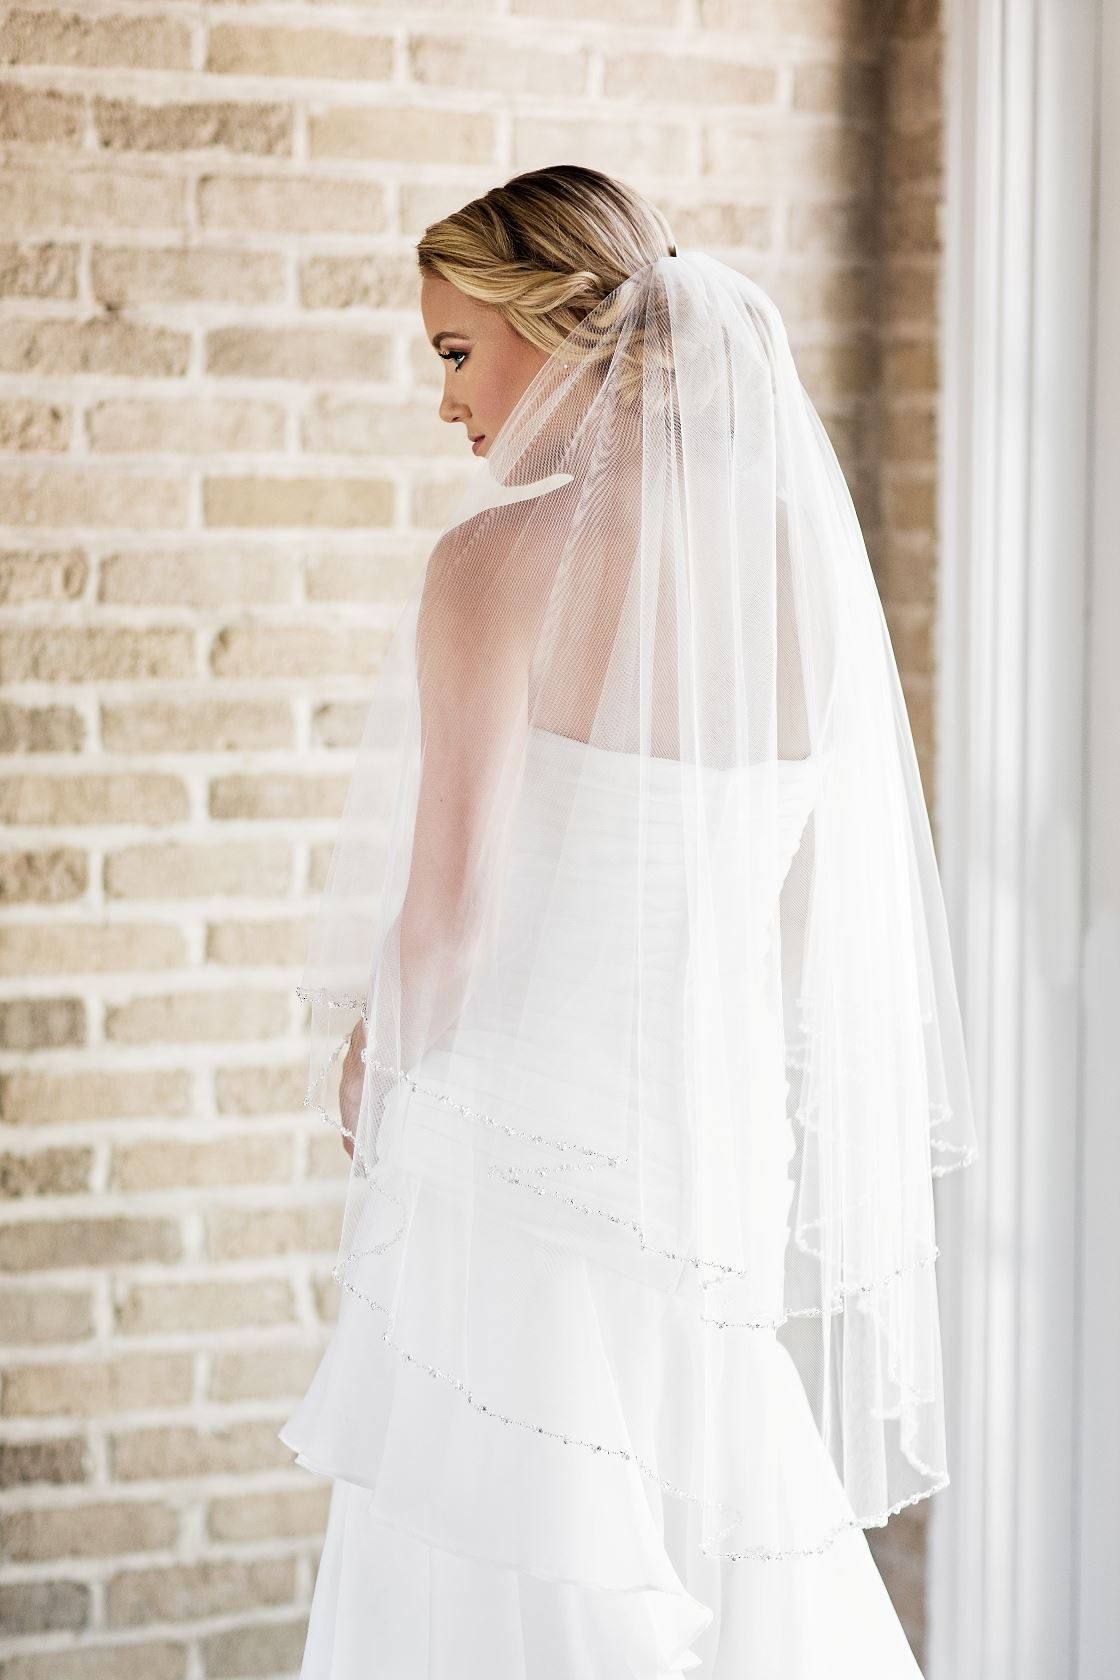 Model wearing white wedding dress and veil